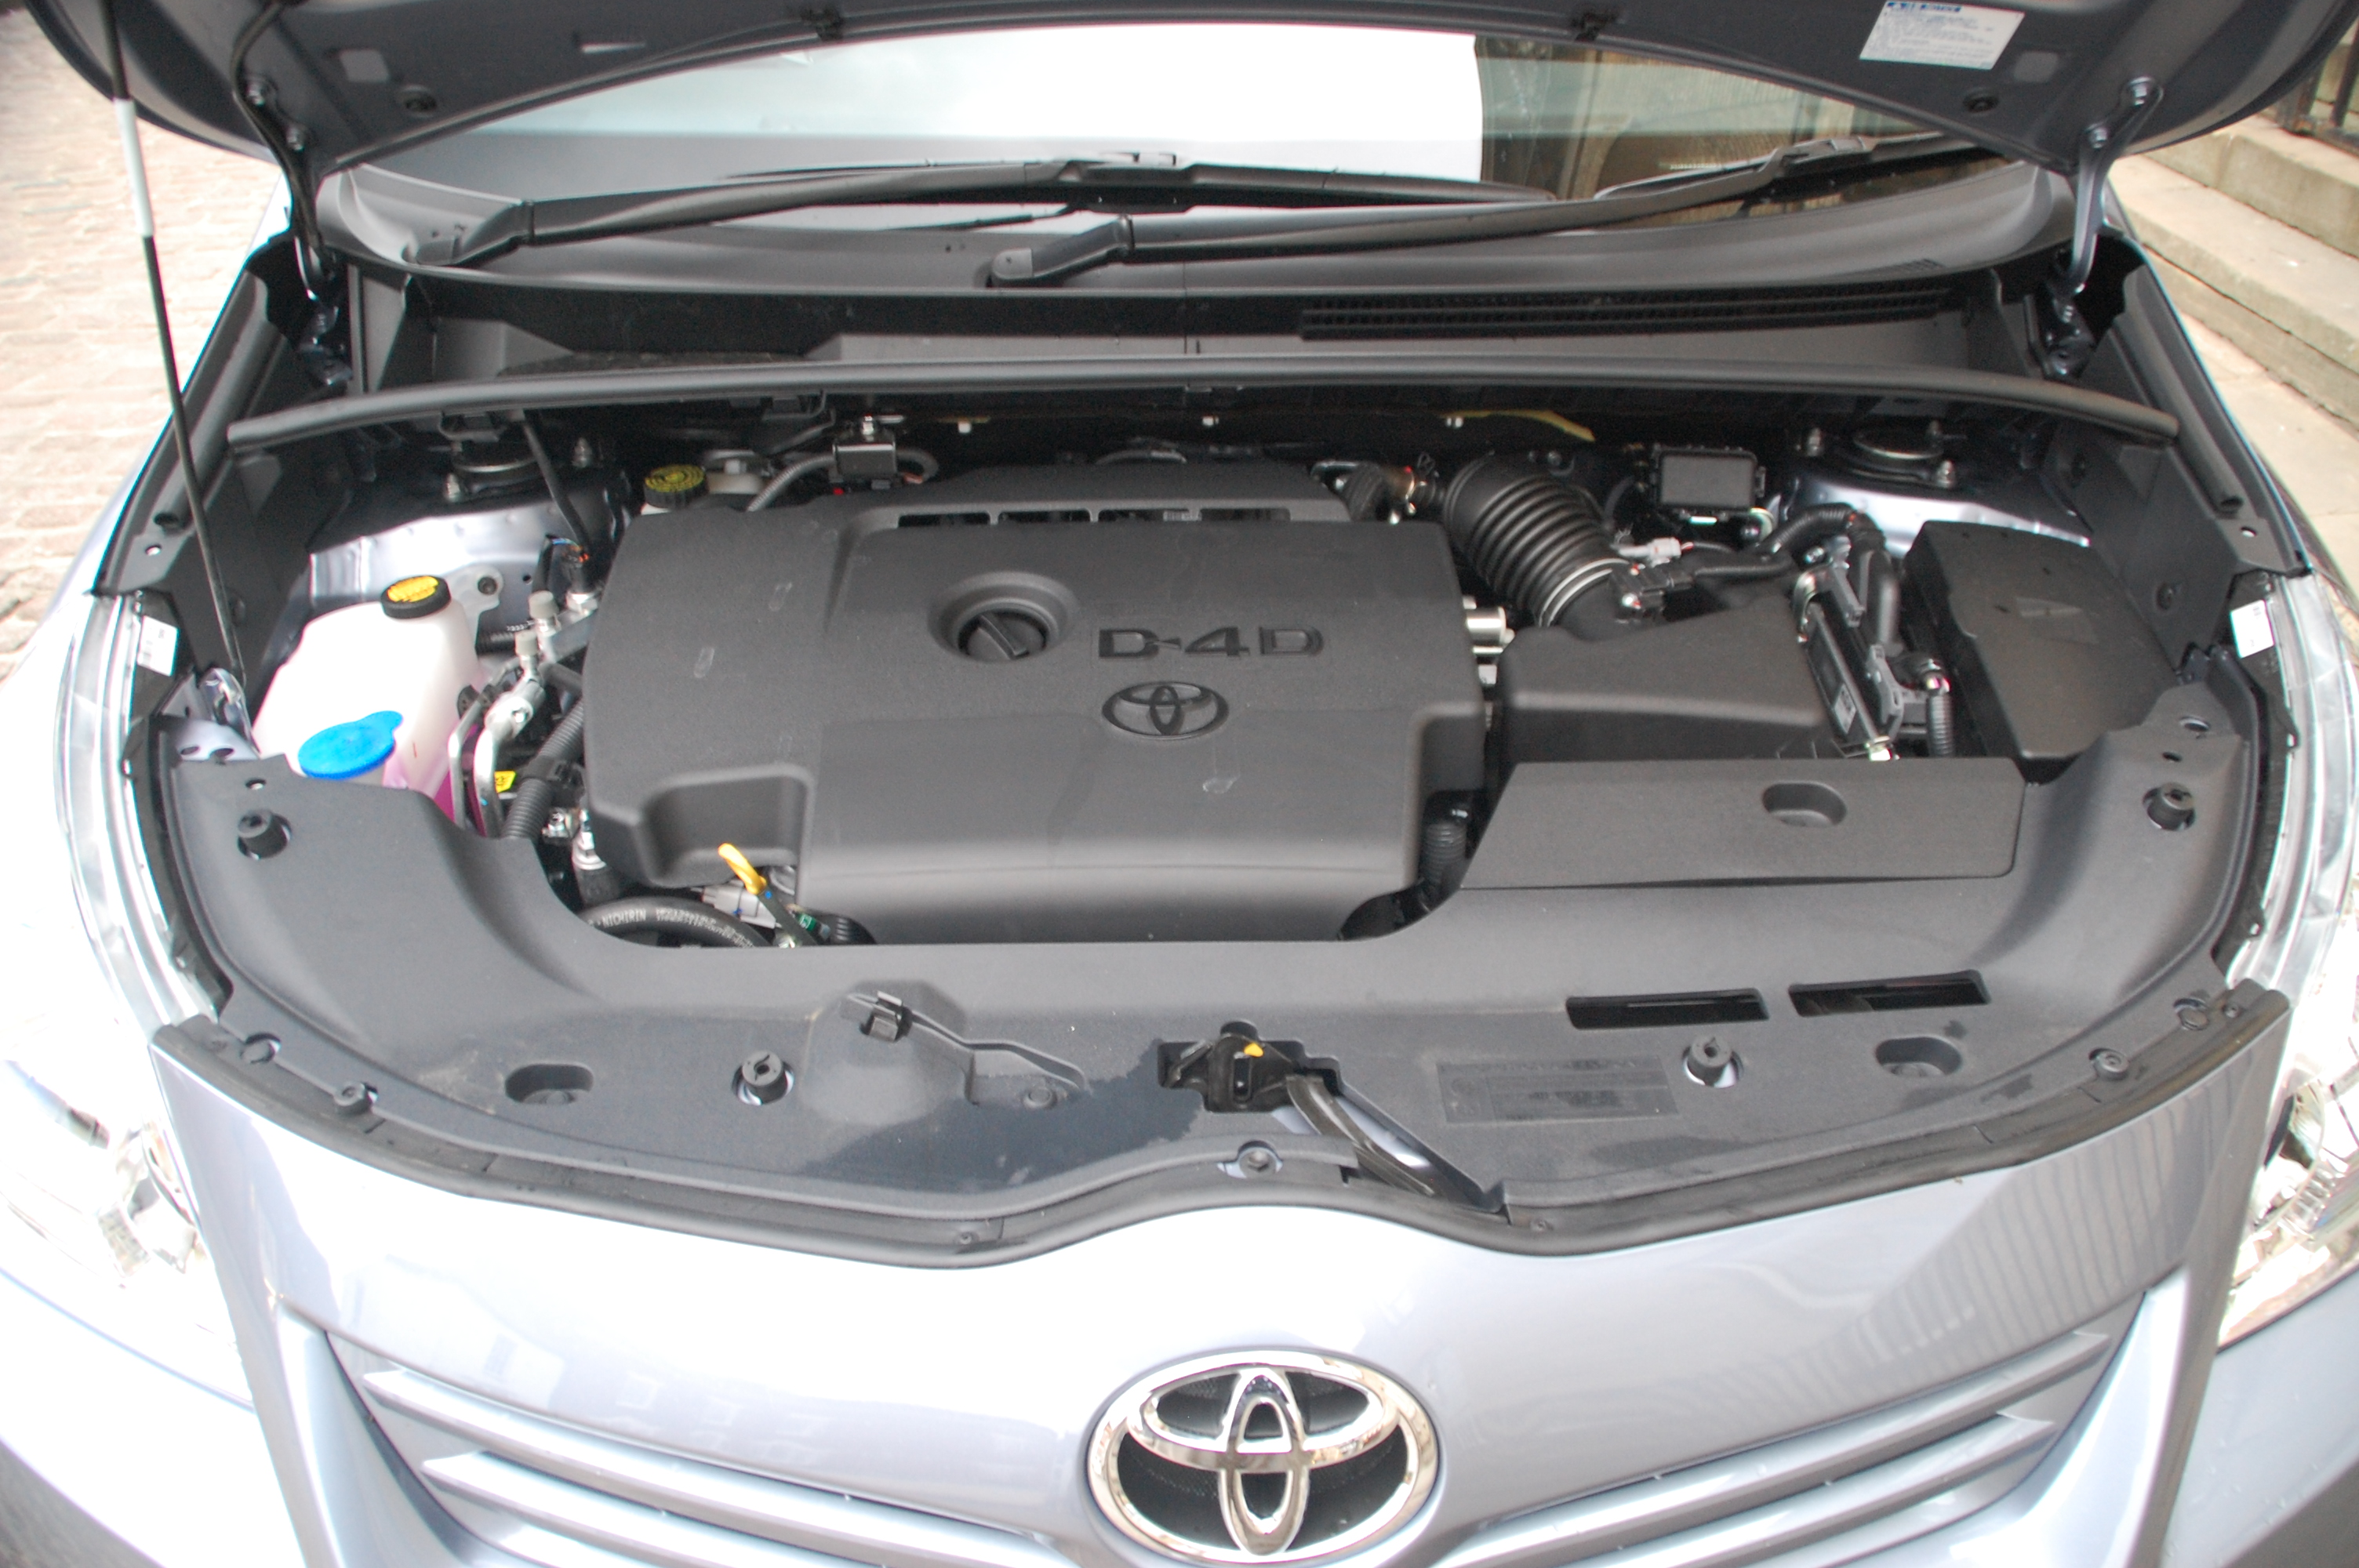 Used Toyota Verso Engines For Sale - Used Toyota Spares